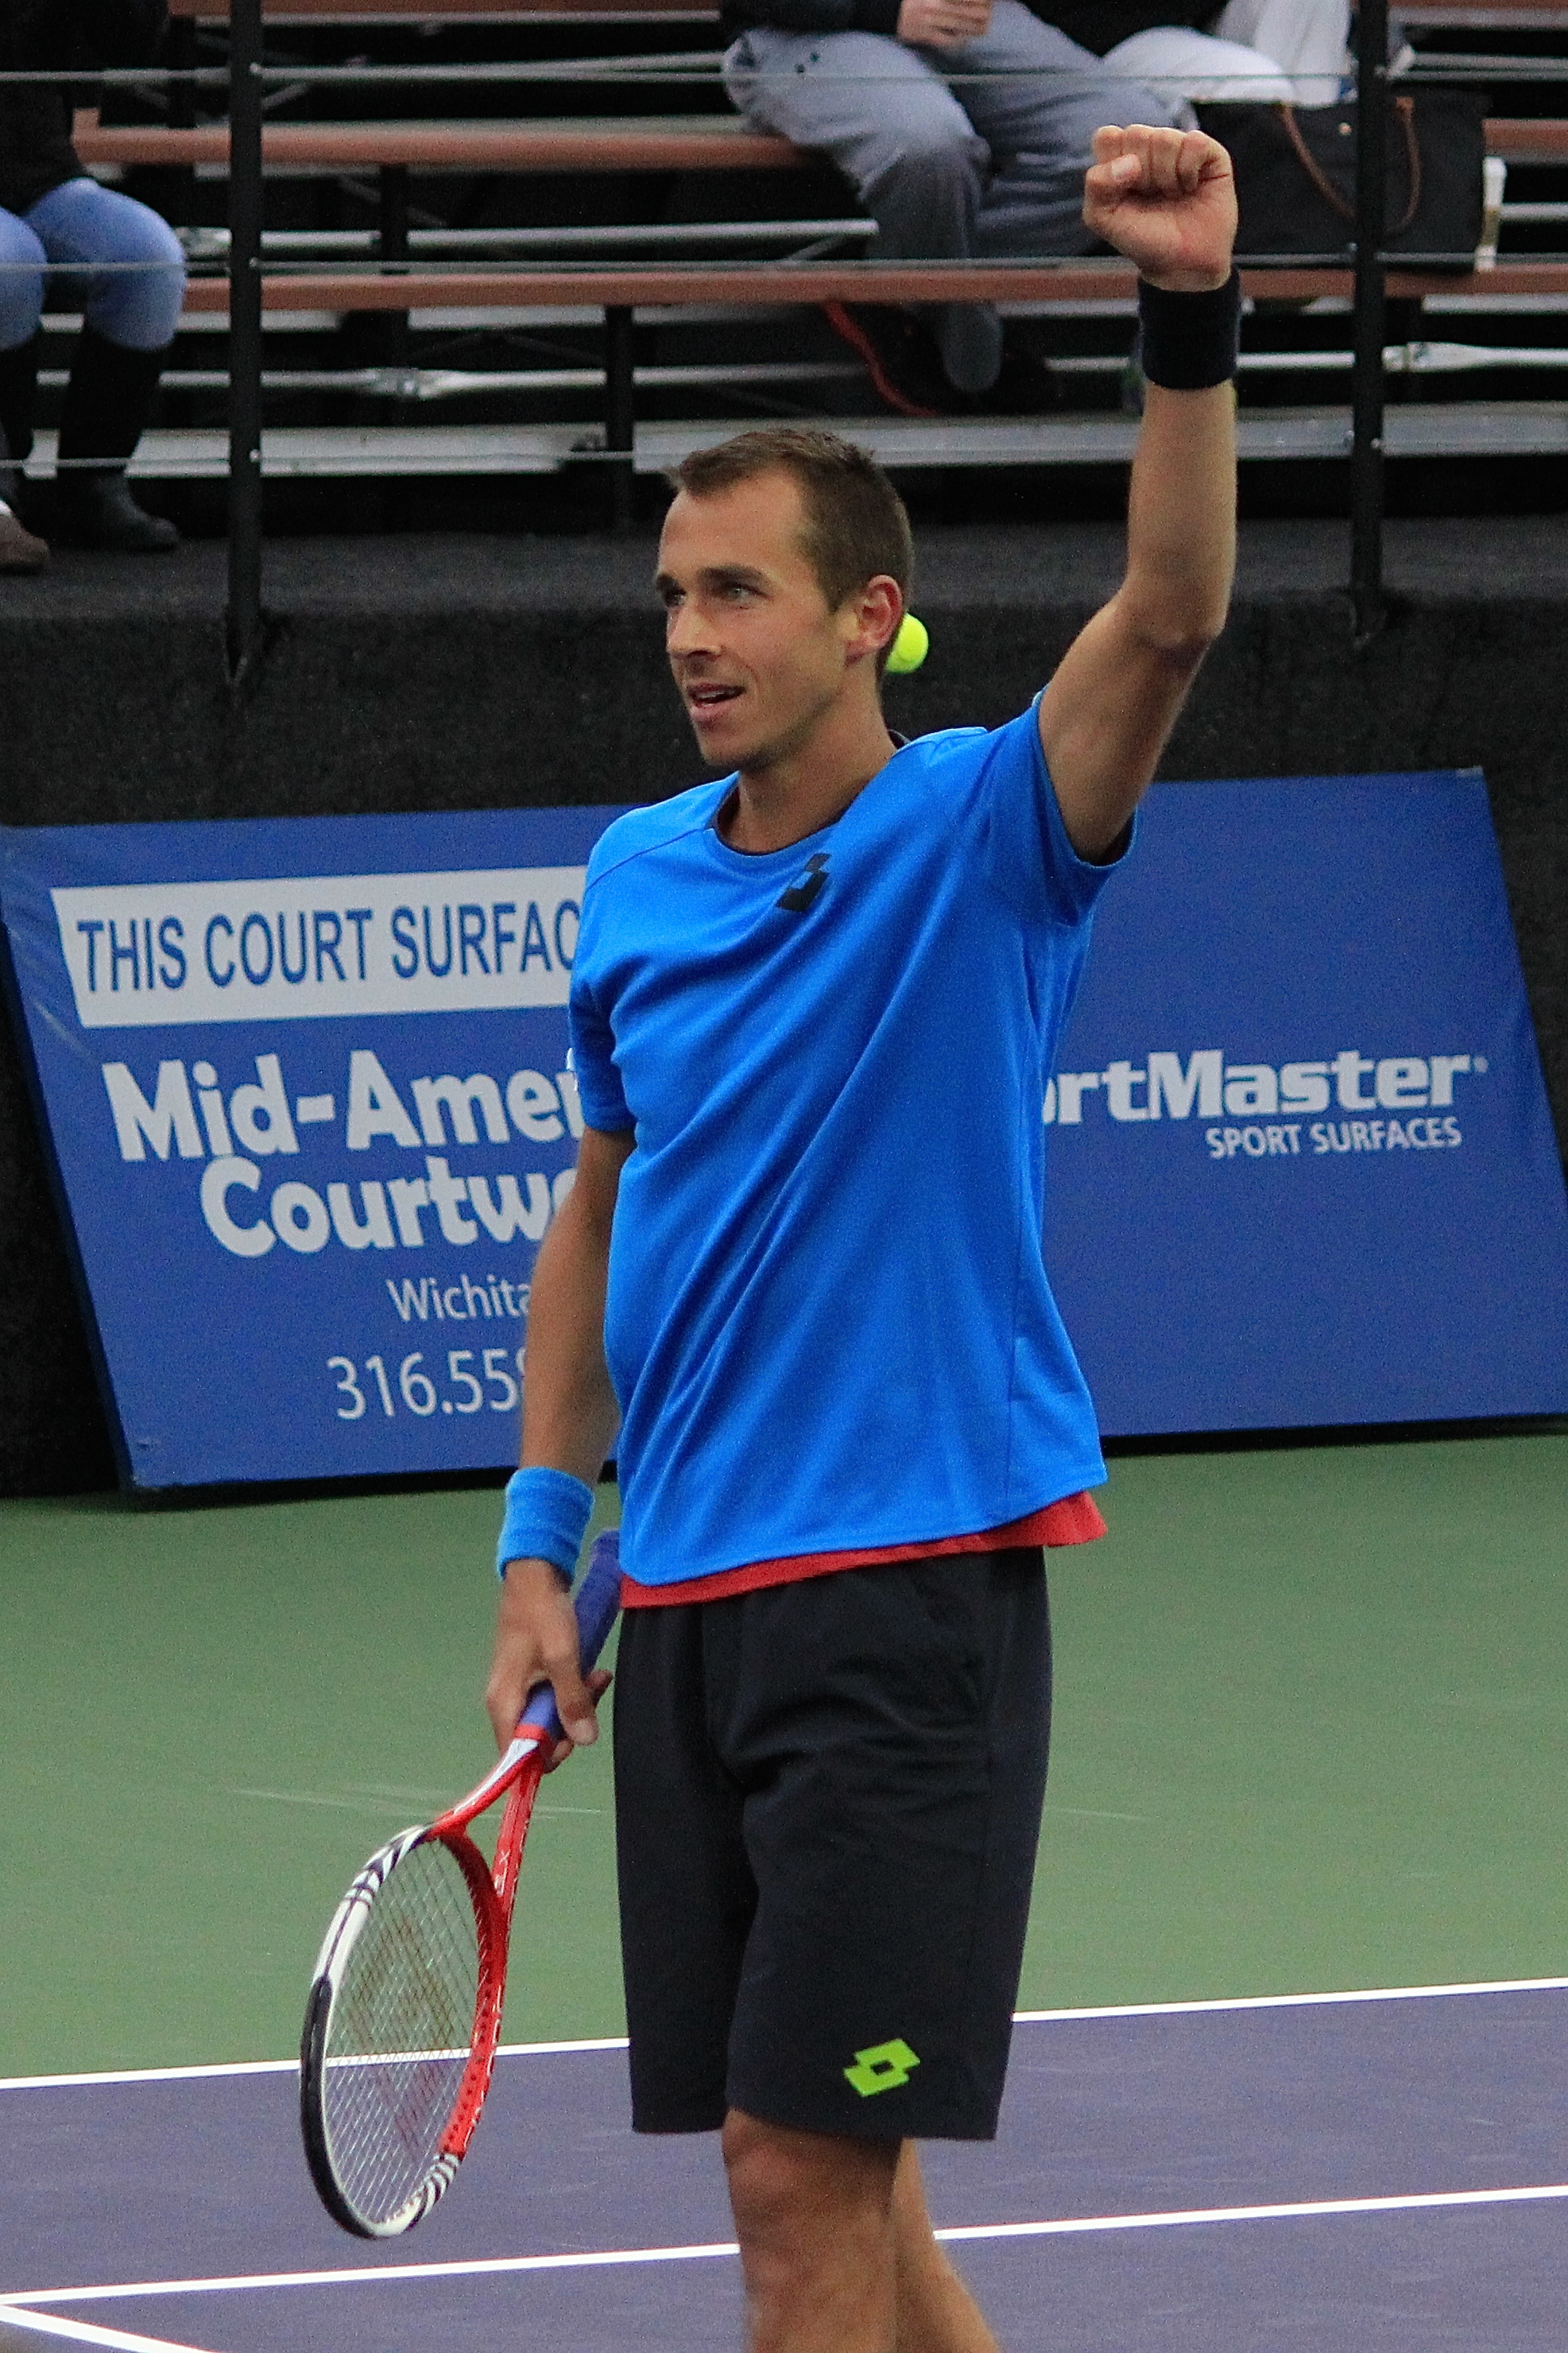 Lukas Rosol (CZE) pumps his fist after winning the 2014 Irving Tennis Classic Singles Championship on Sunday, March 16, at the Four Seasons Club and Resort. Rosol defeated Steve Johnson (USA) in straight sets.